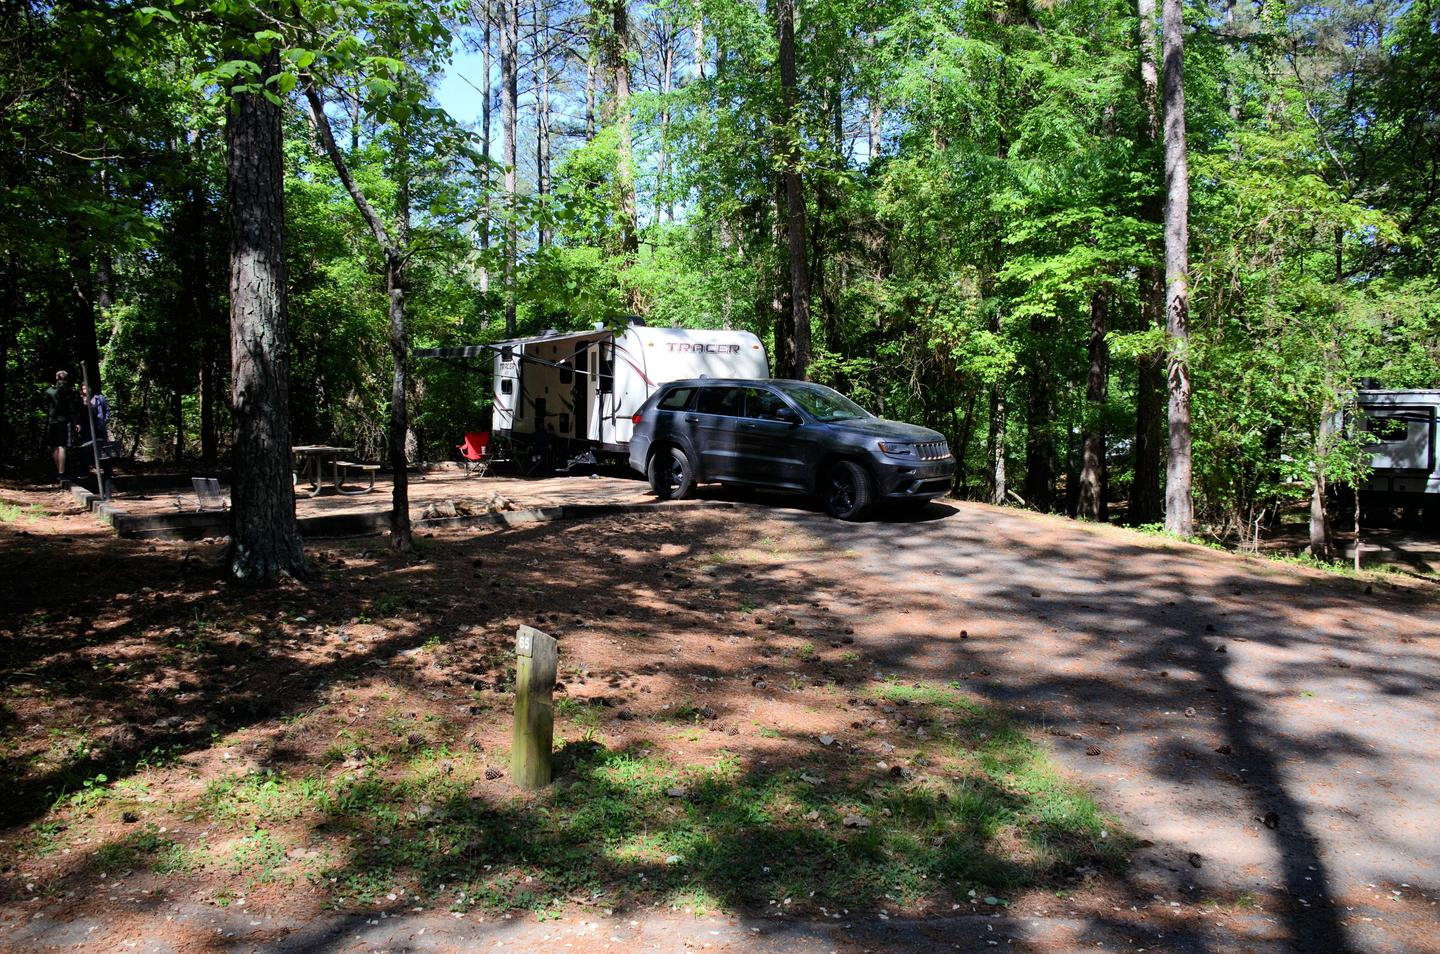 Driveway slope, awning-side clearance.McKinney Campground, campsite 65.